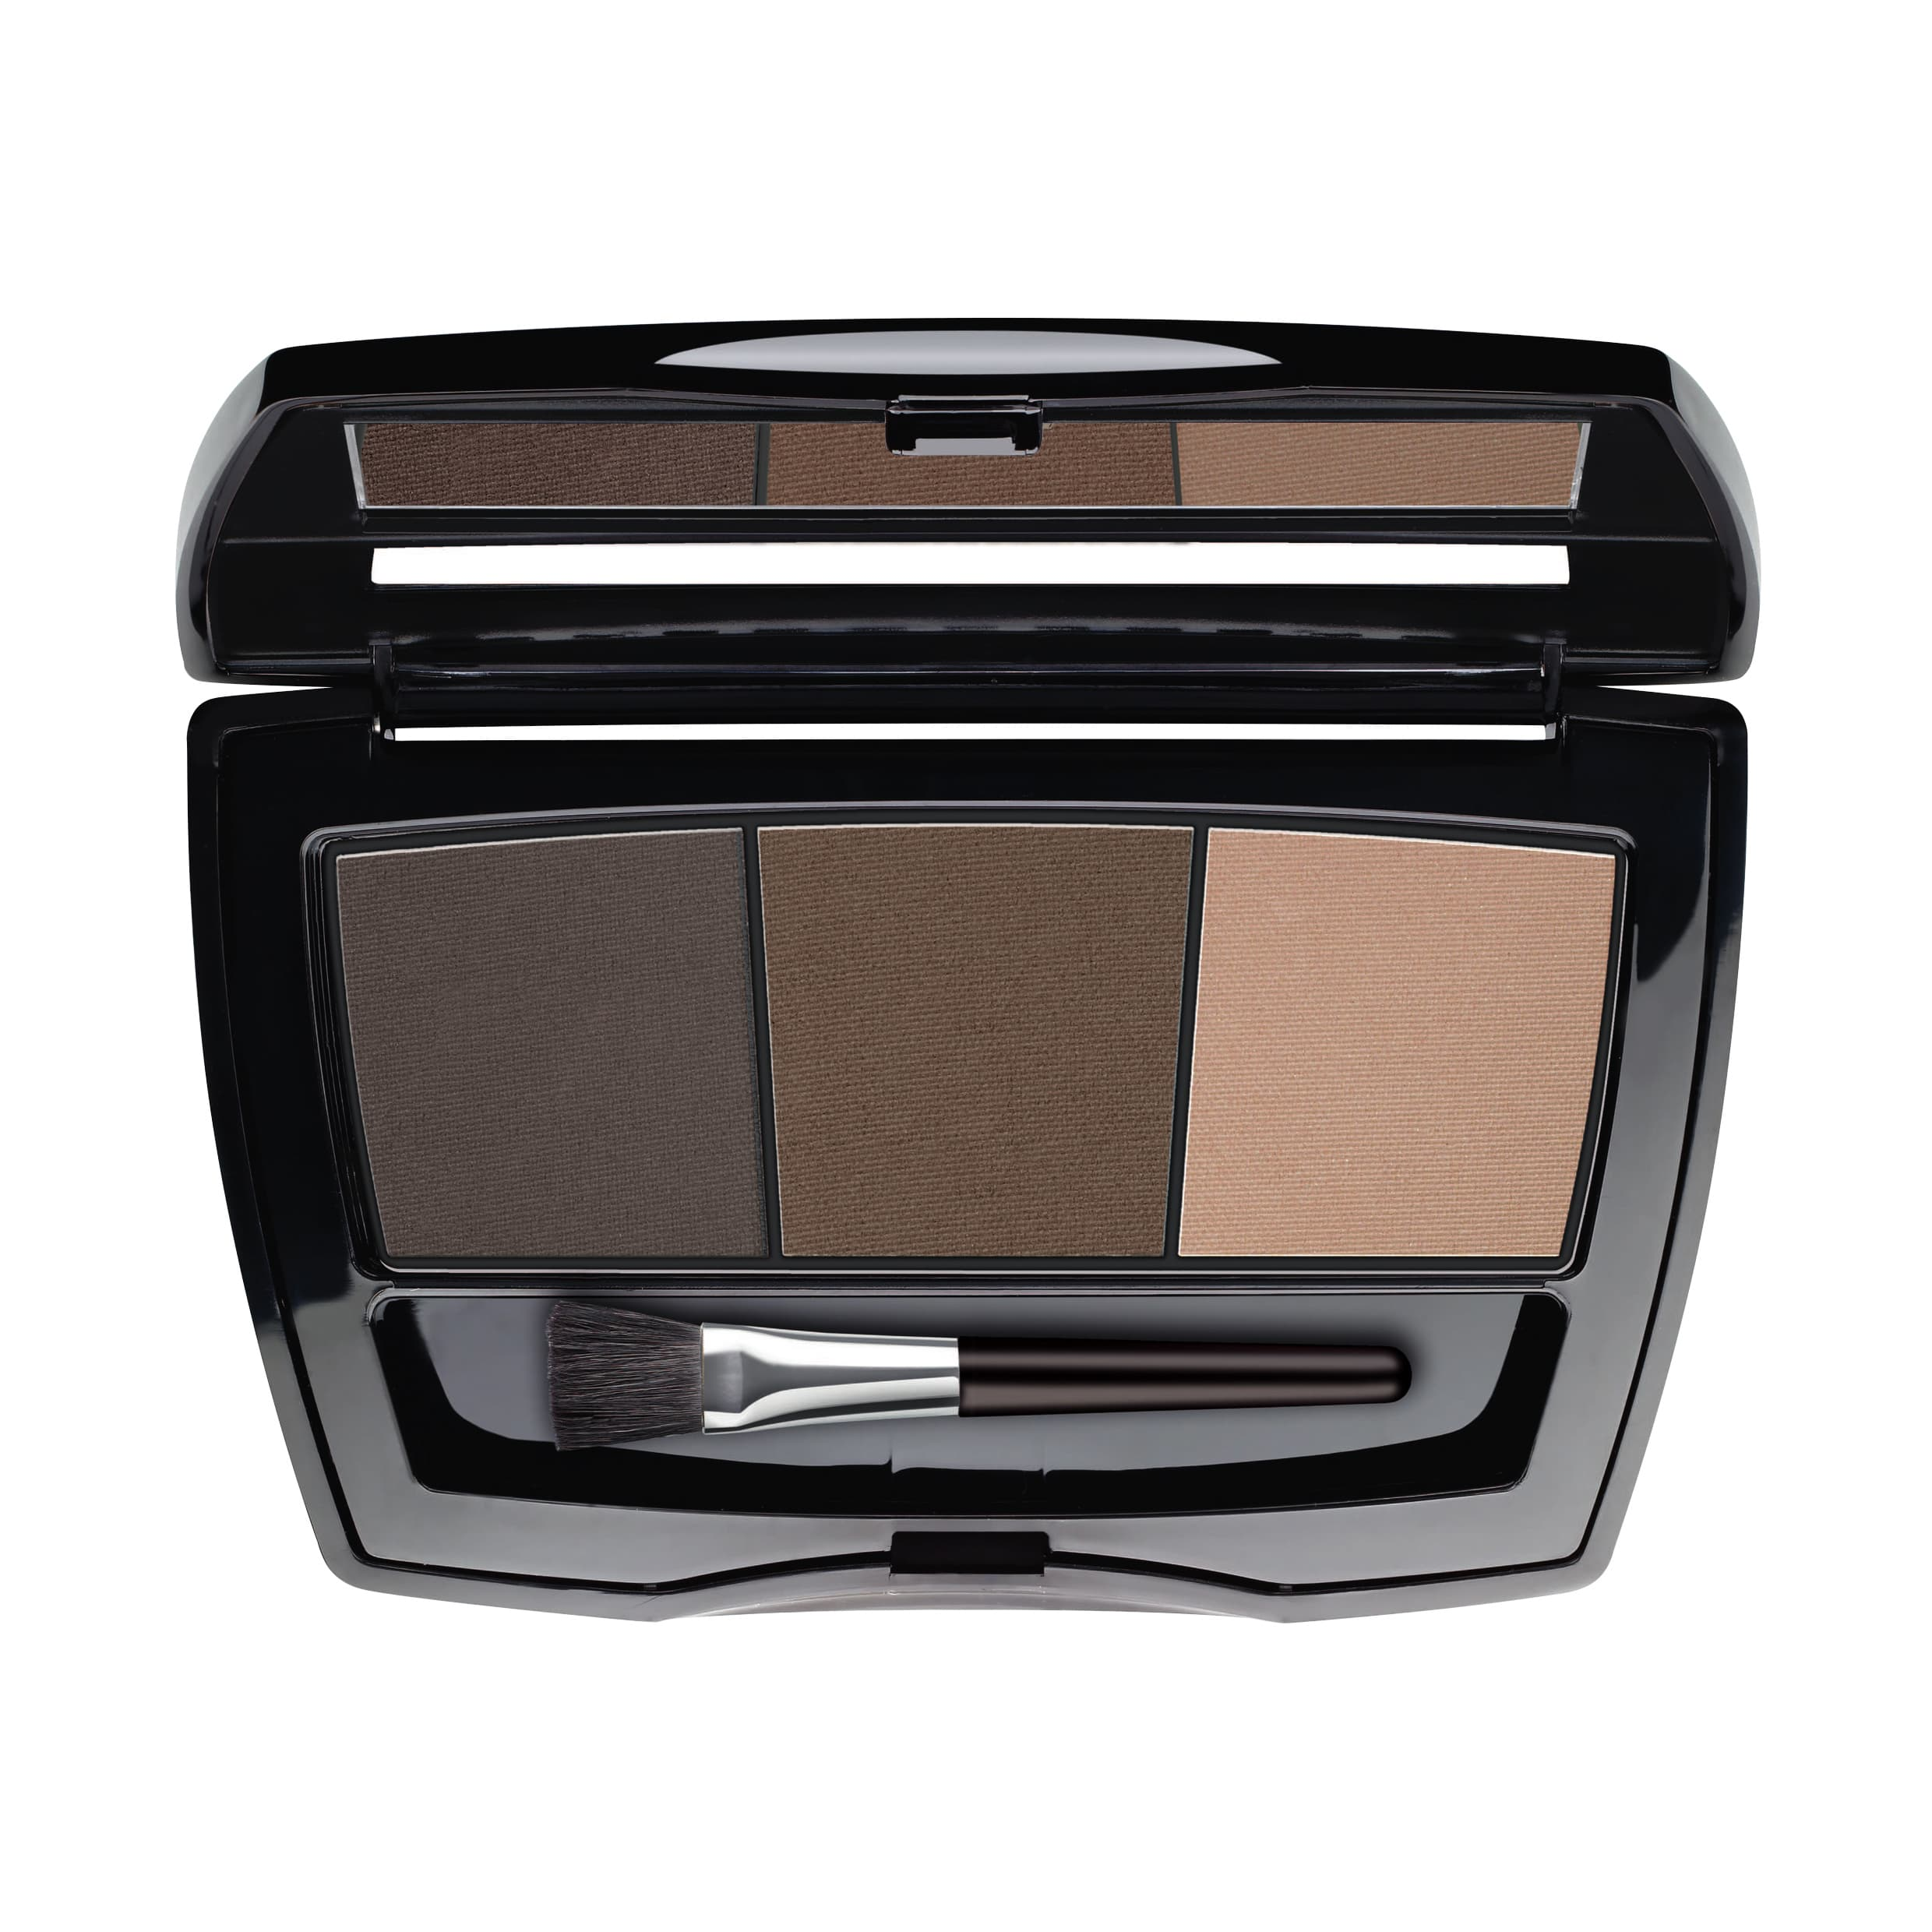 Be Yu Catwalk Star Eyebrow Powder Тени Для Бровей